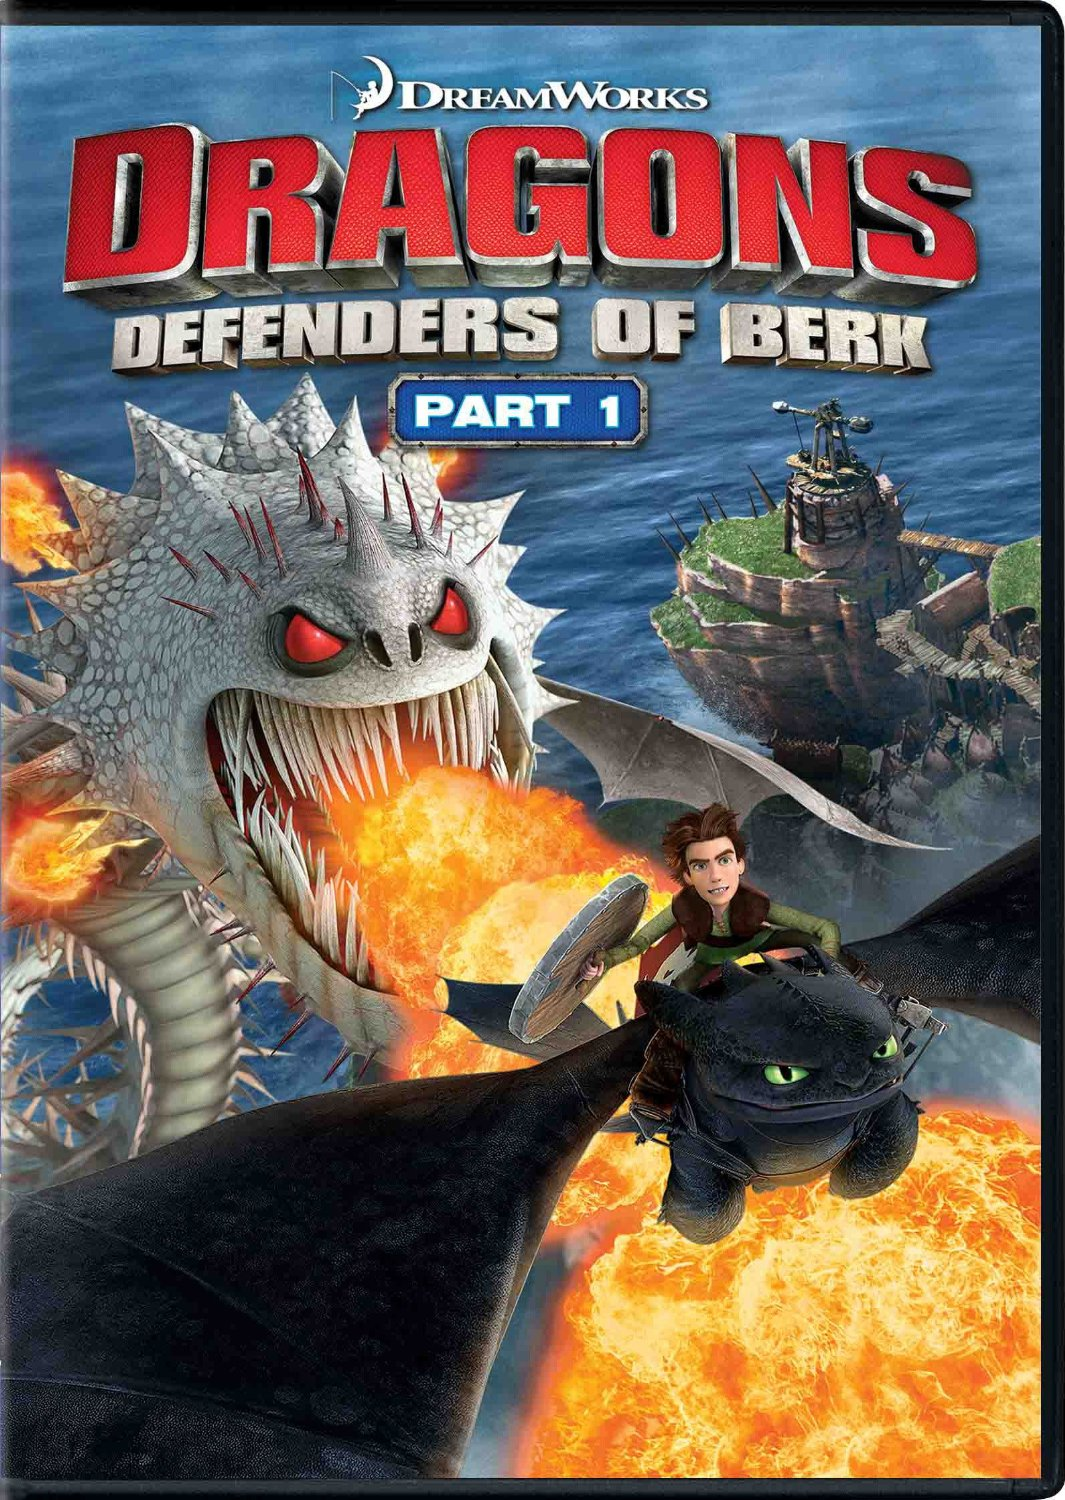 Dragons: Defenders Of Berk Part 1 Dvd Review, Dragons: Riders Of Berk   Flickdirect